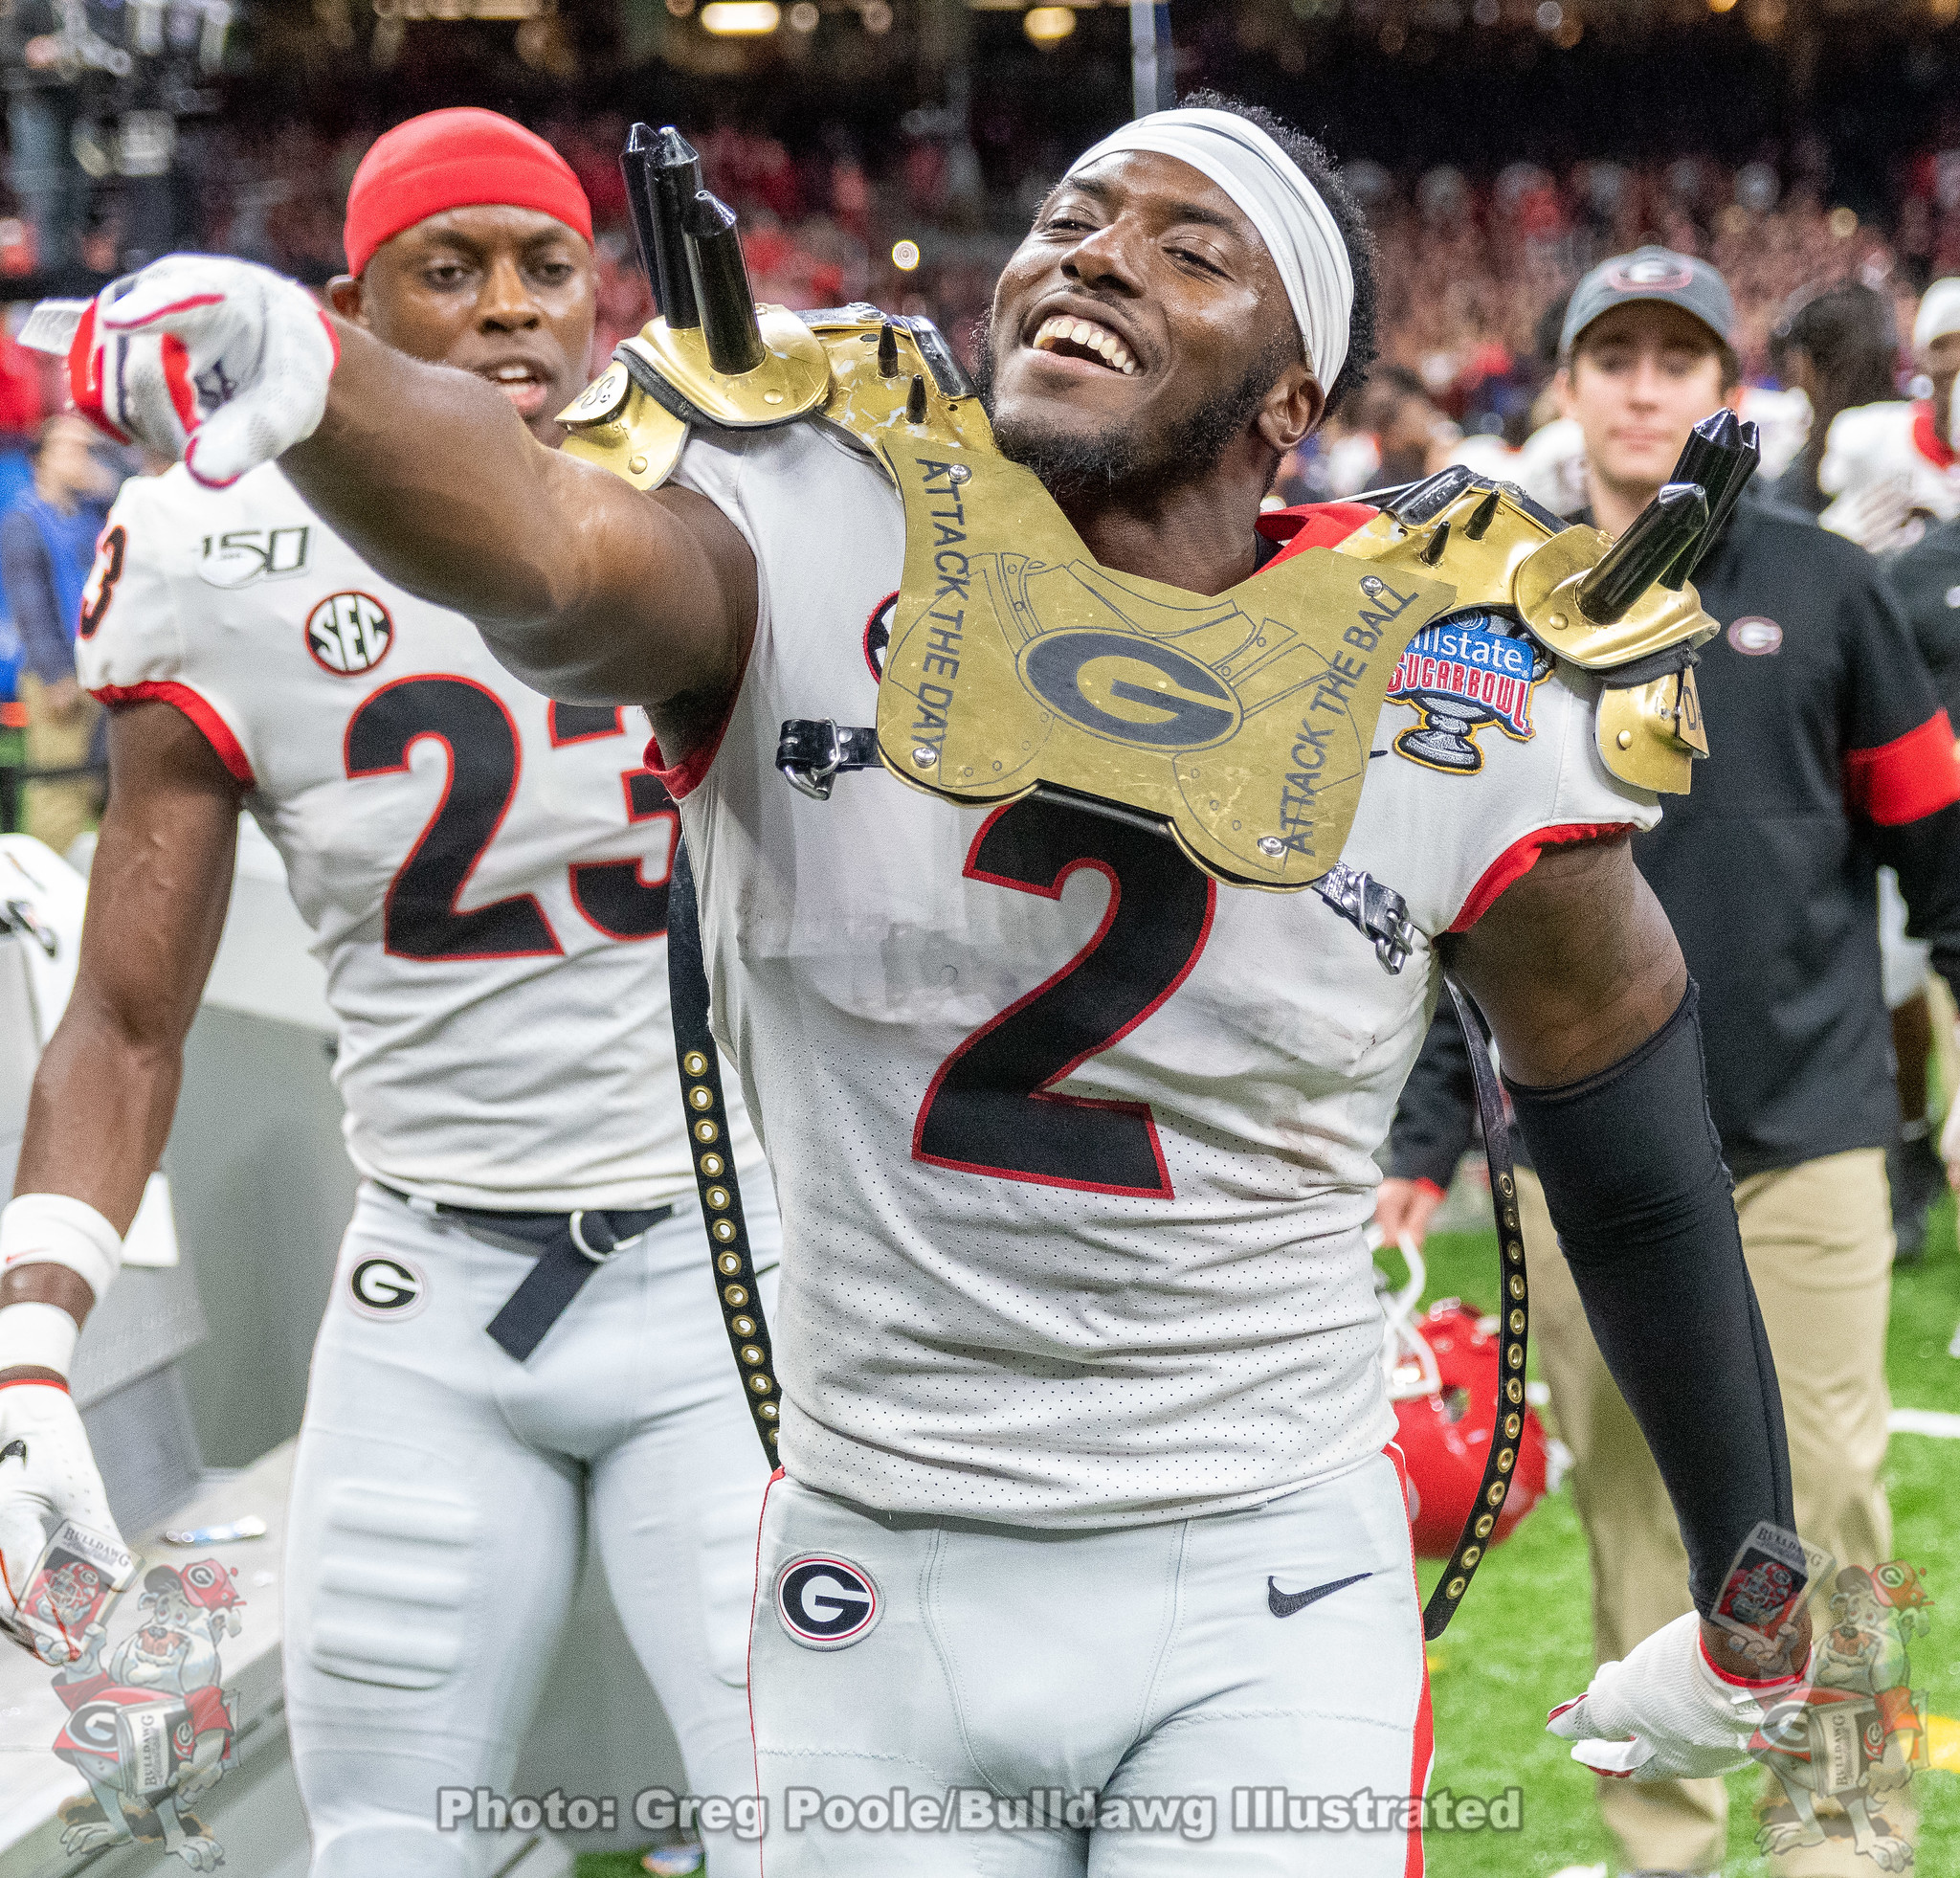 Richard LeCounte (2) - 2020 Sugar Bowl - Georgia vs. Baylor 2020 - Postgame - January 01, 2020